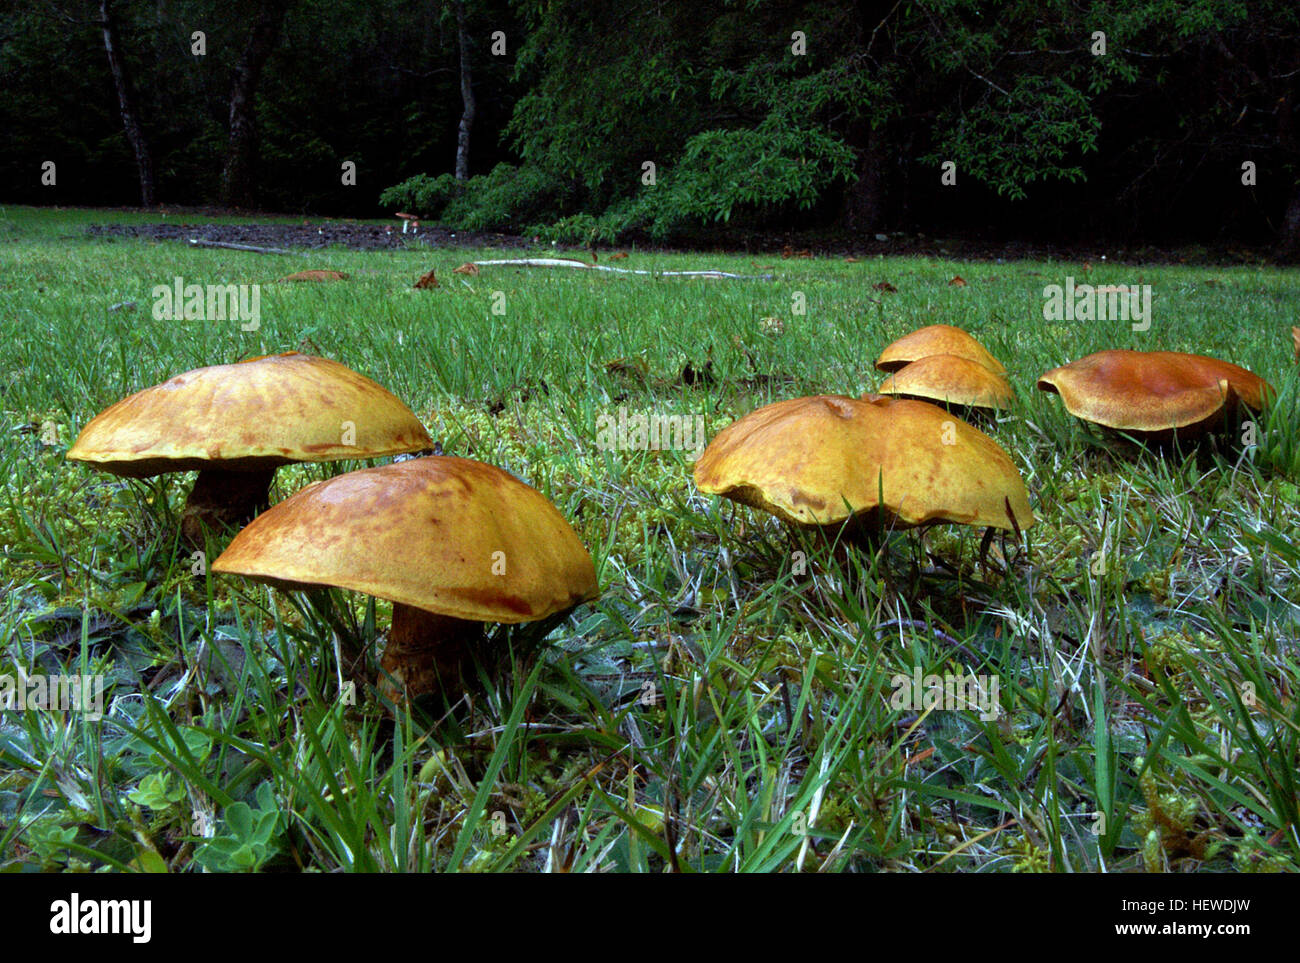 A bolete is a type of fungal fruiting body characterized by the presence of a pileus that is clearly differentiated - Stock Image